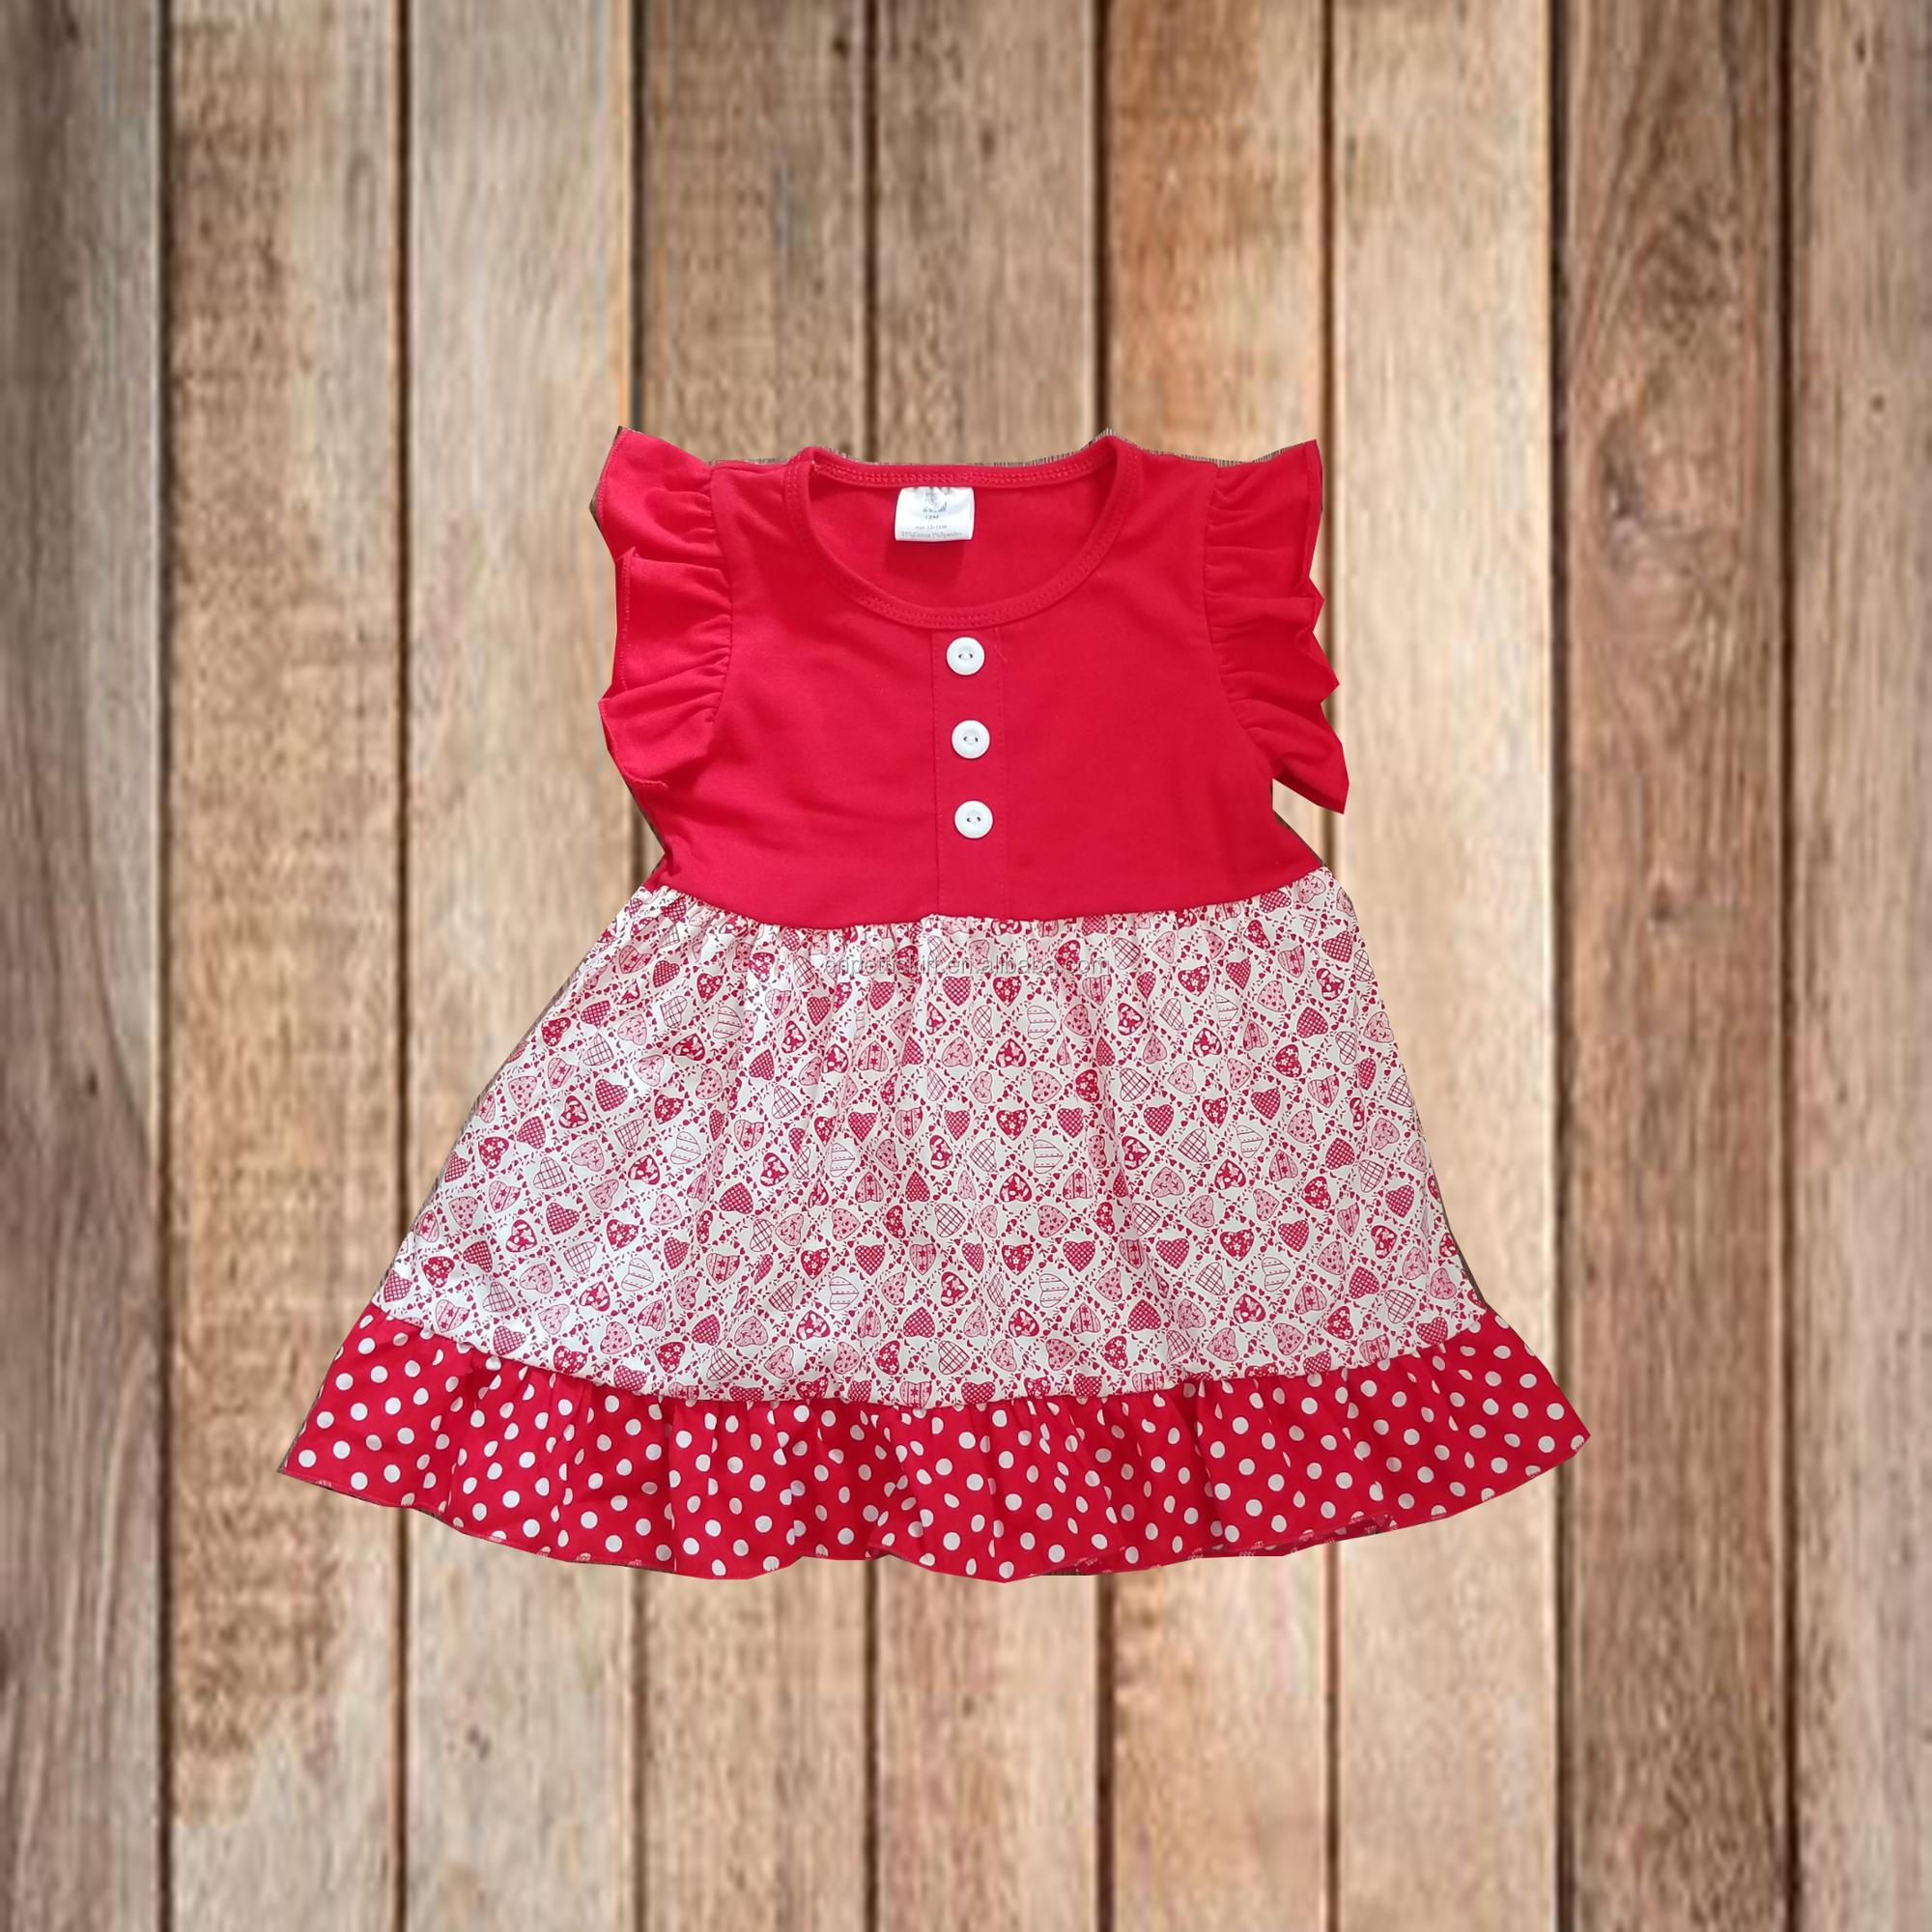 Children Clothing Sets India Wholesale Clothes Pink Ruffle Top And